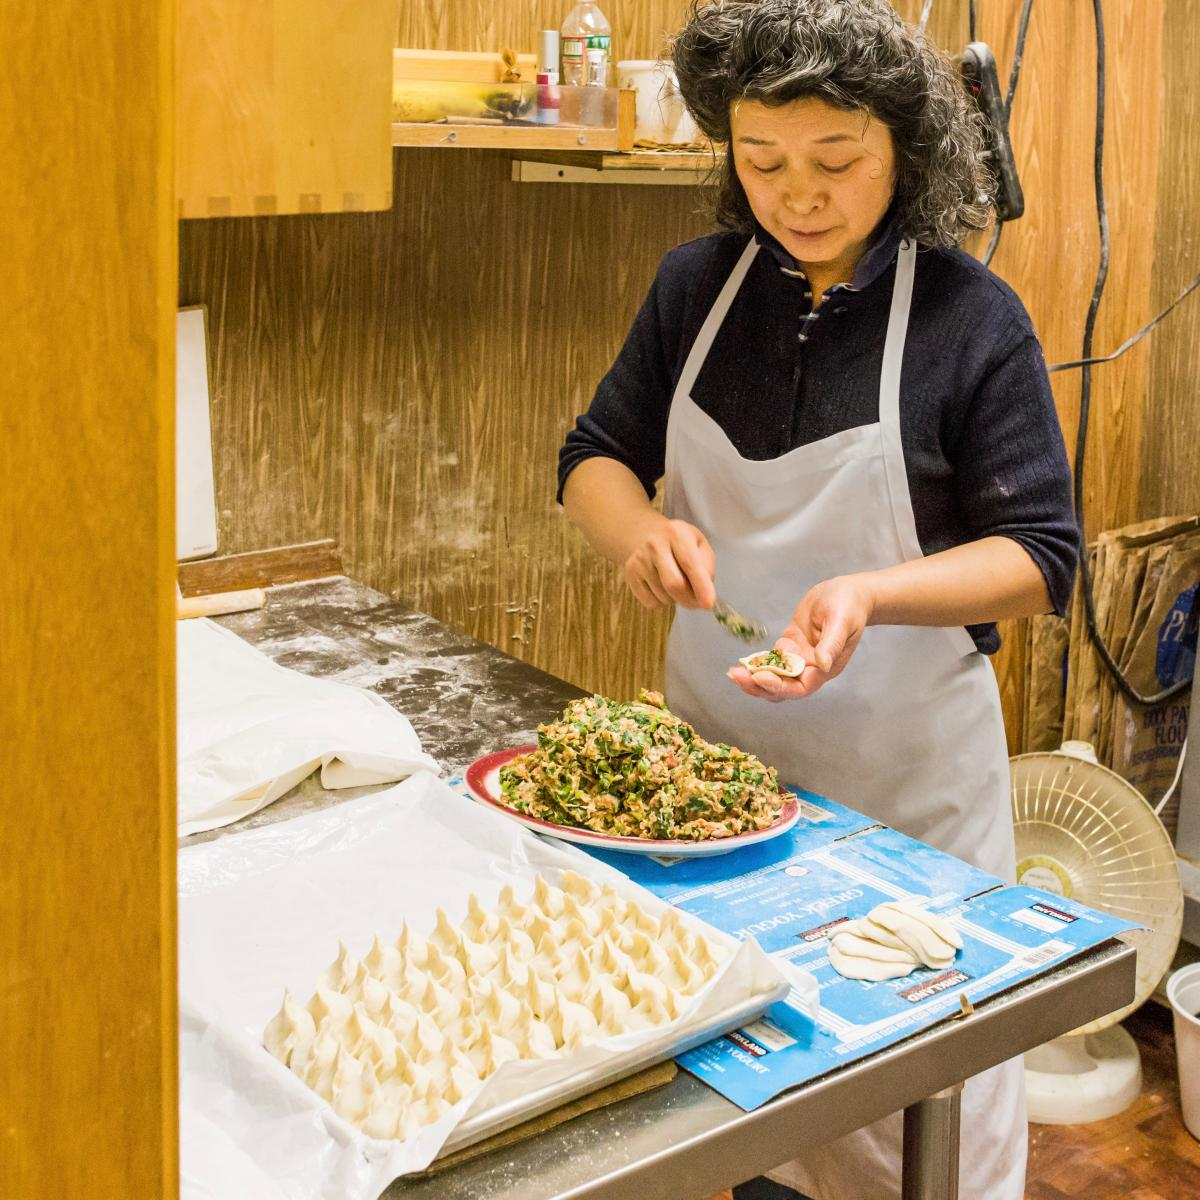 dumpling lady jianhua ma makes qingdao gardens famous pork and leek dumplings by hand photo nicole fleming - Qingdao Garden